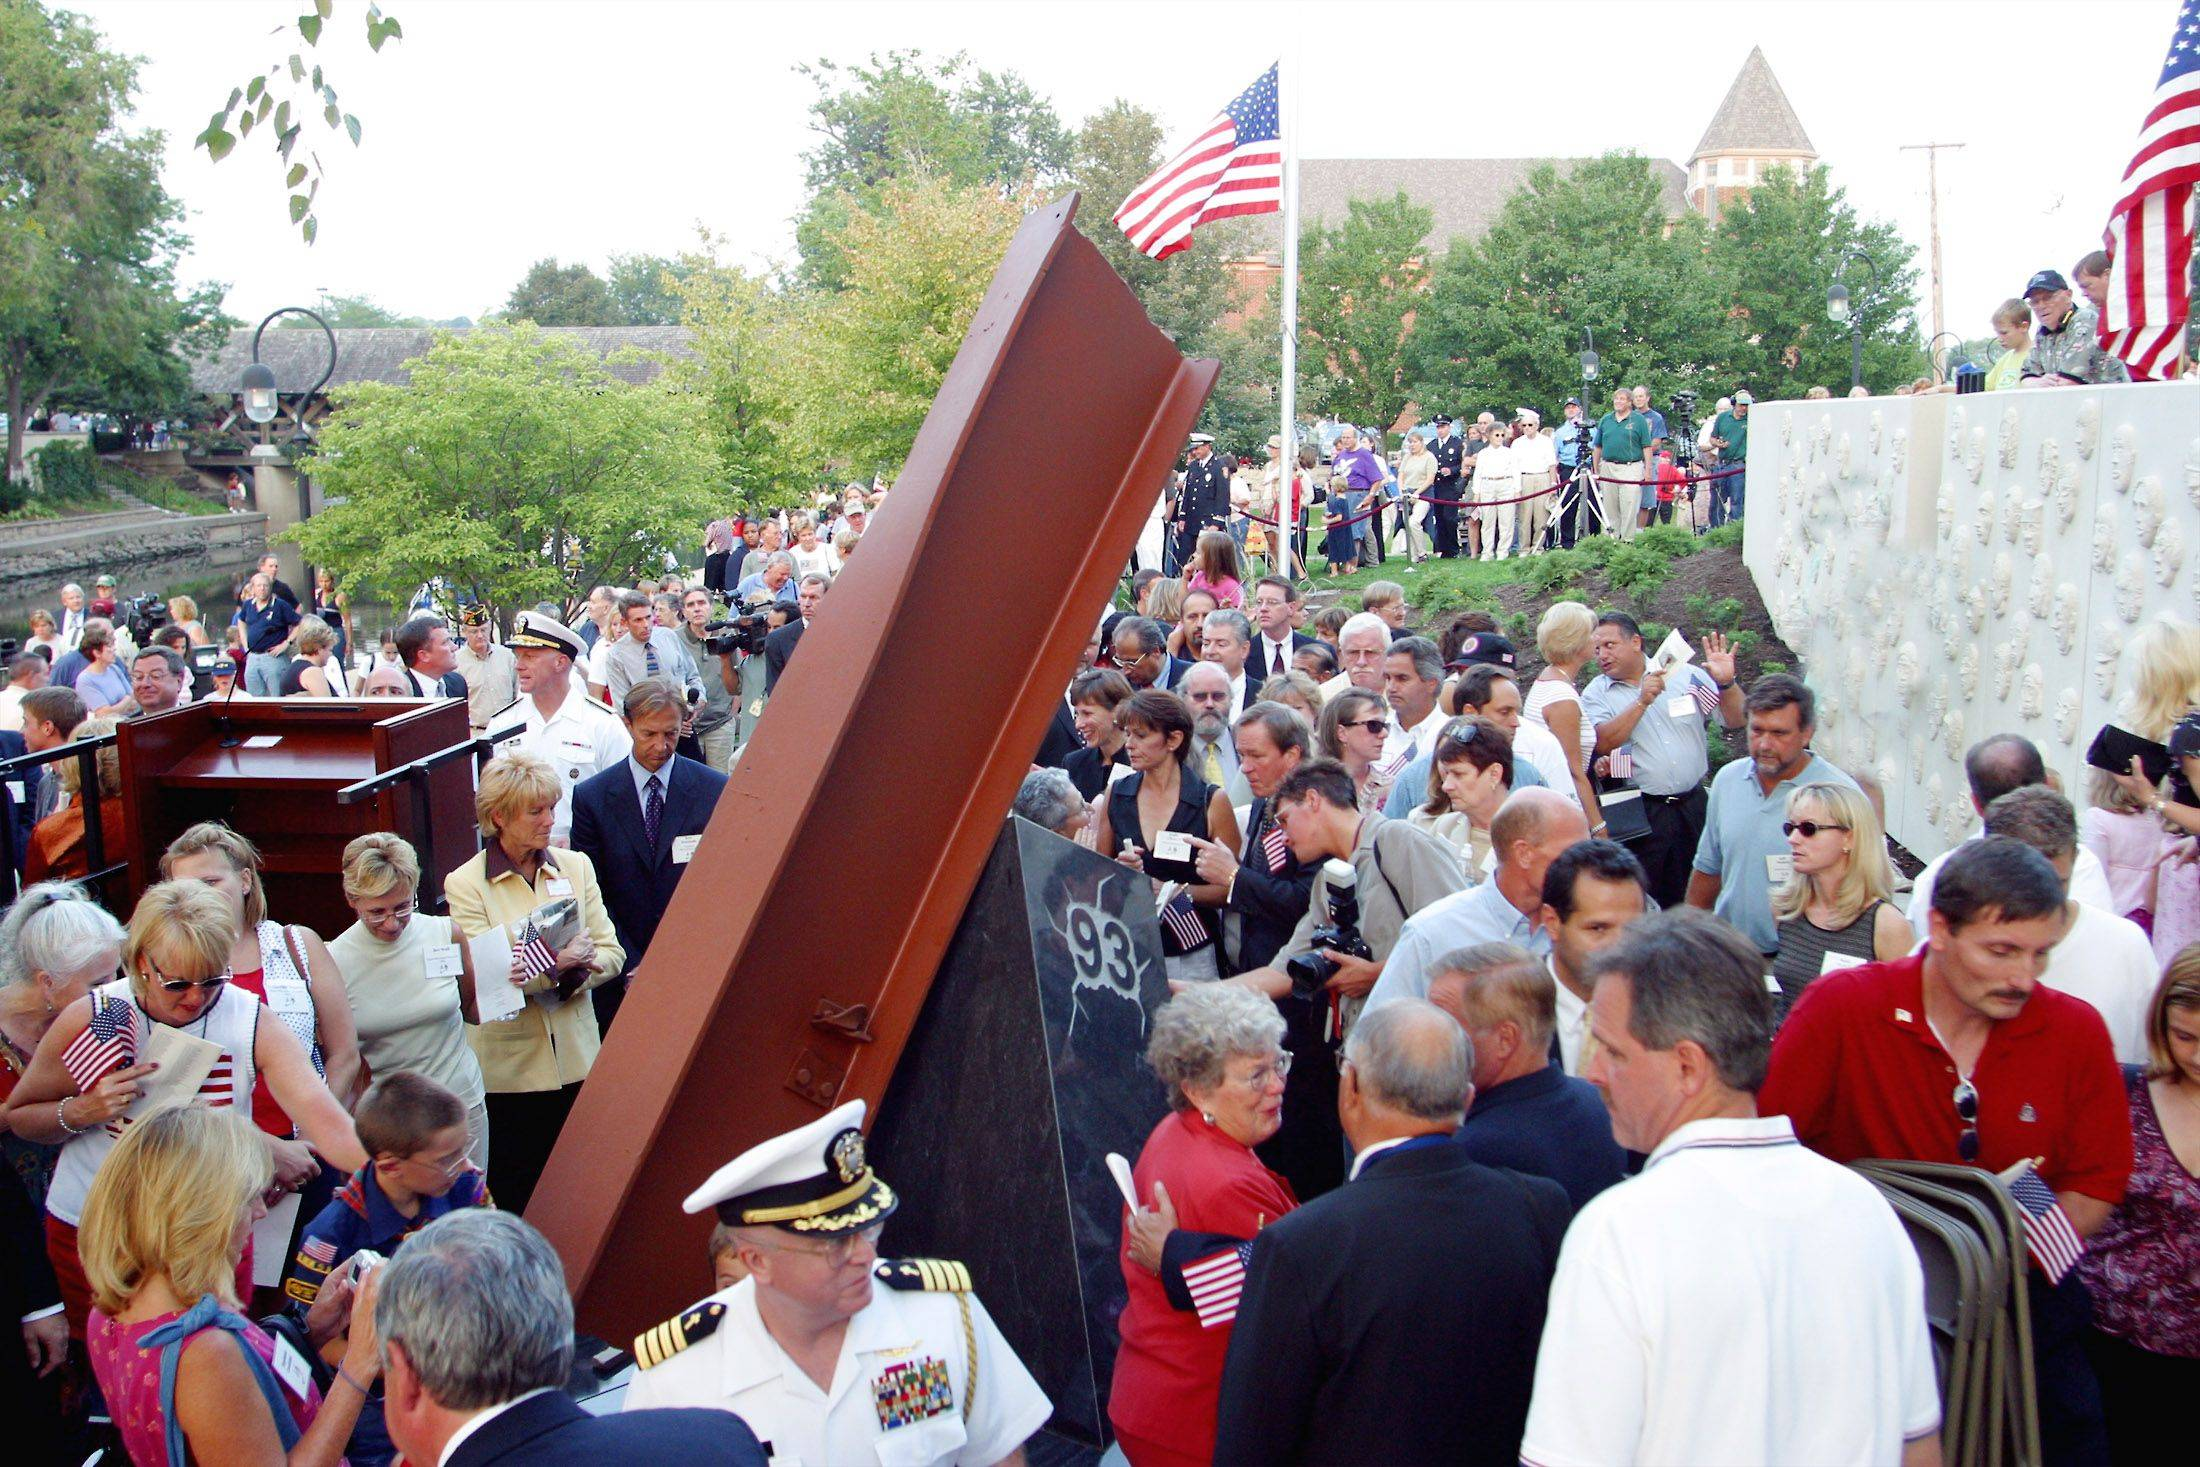 Where to find other Sept. 11 memorials in the suburbs